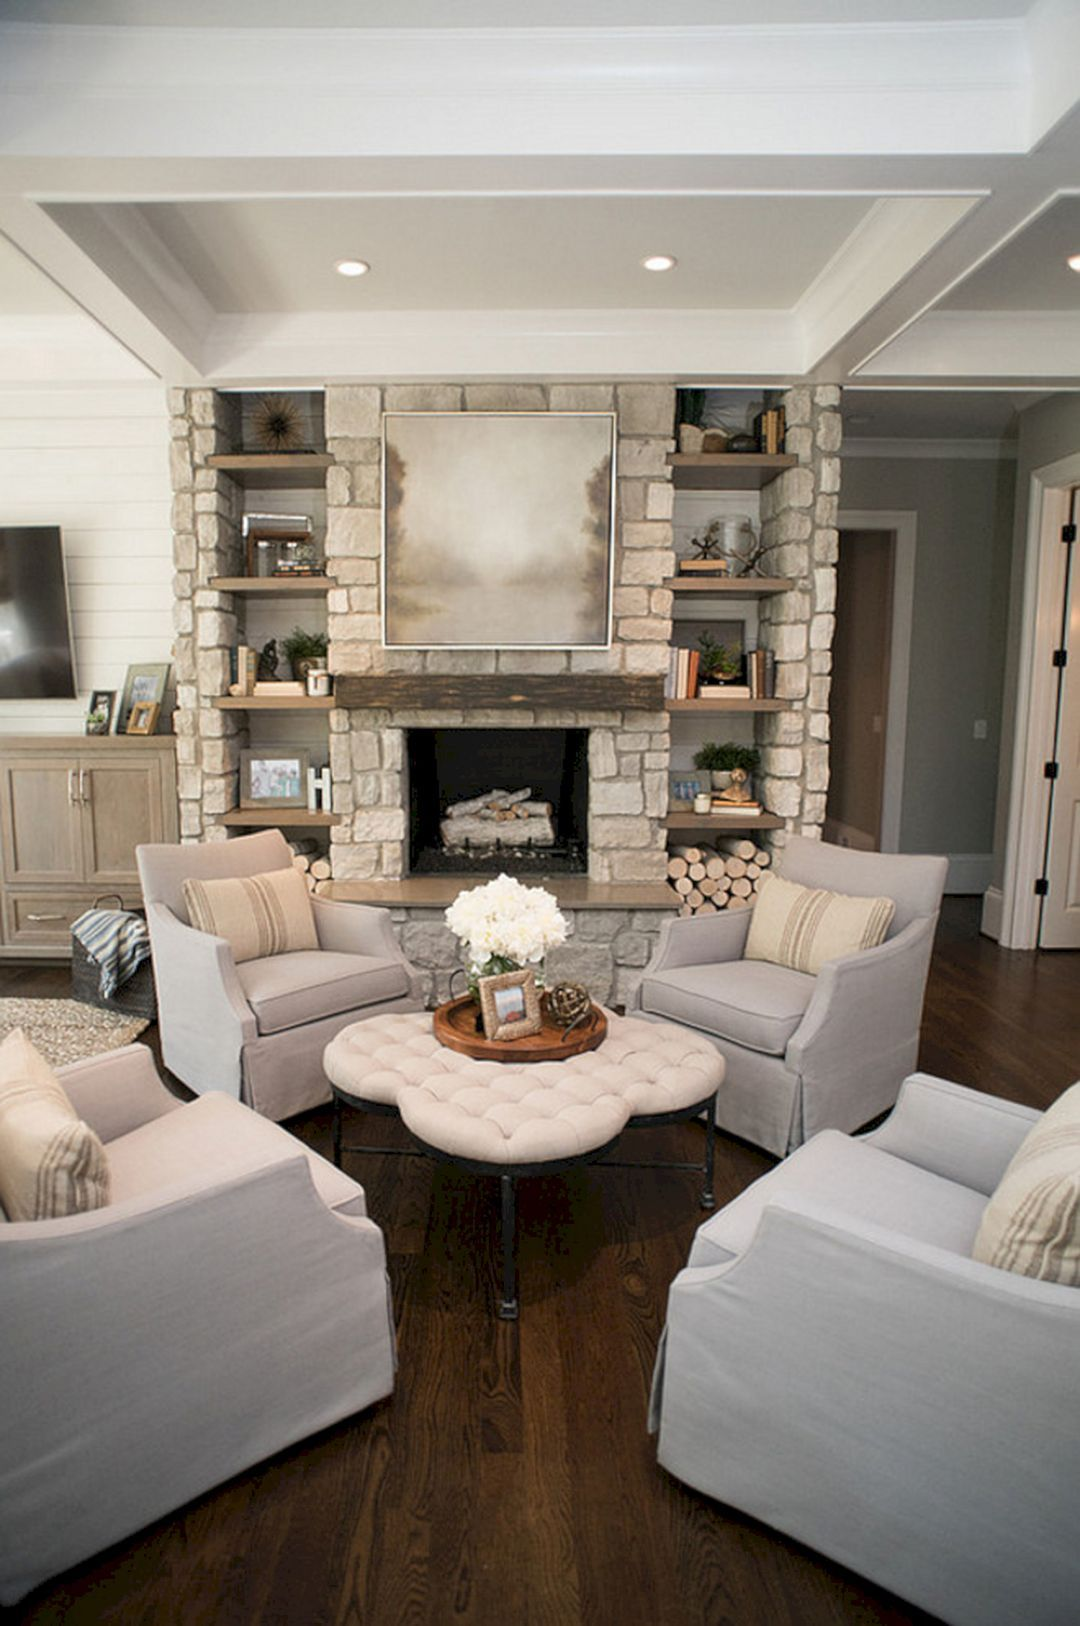 50+ Living room furniture ideas with fireplace ideas